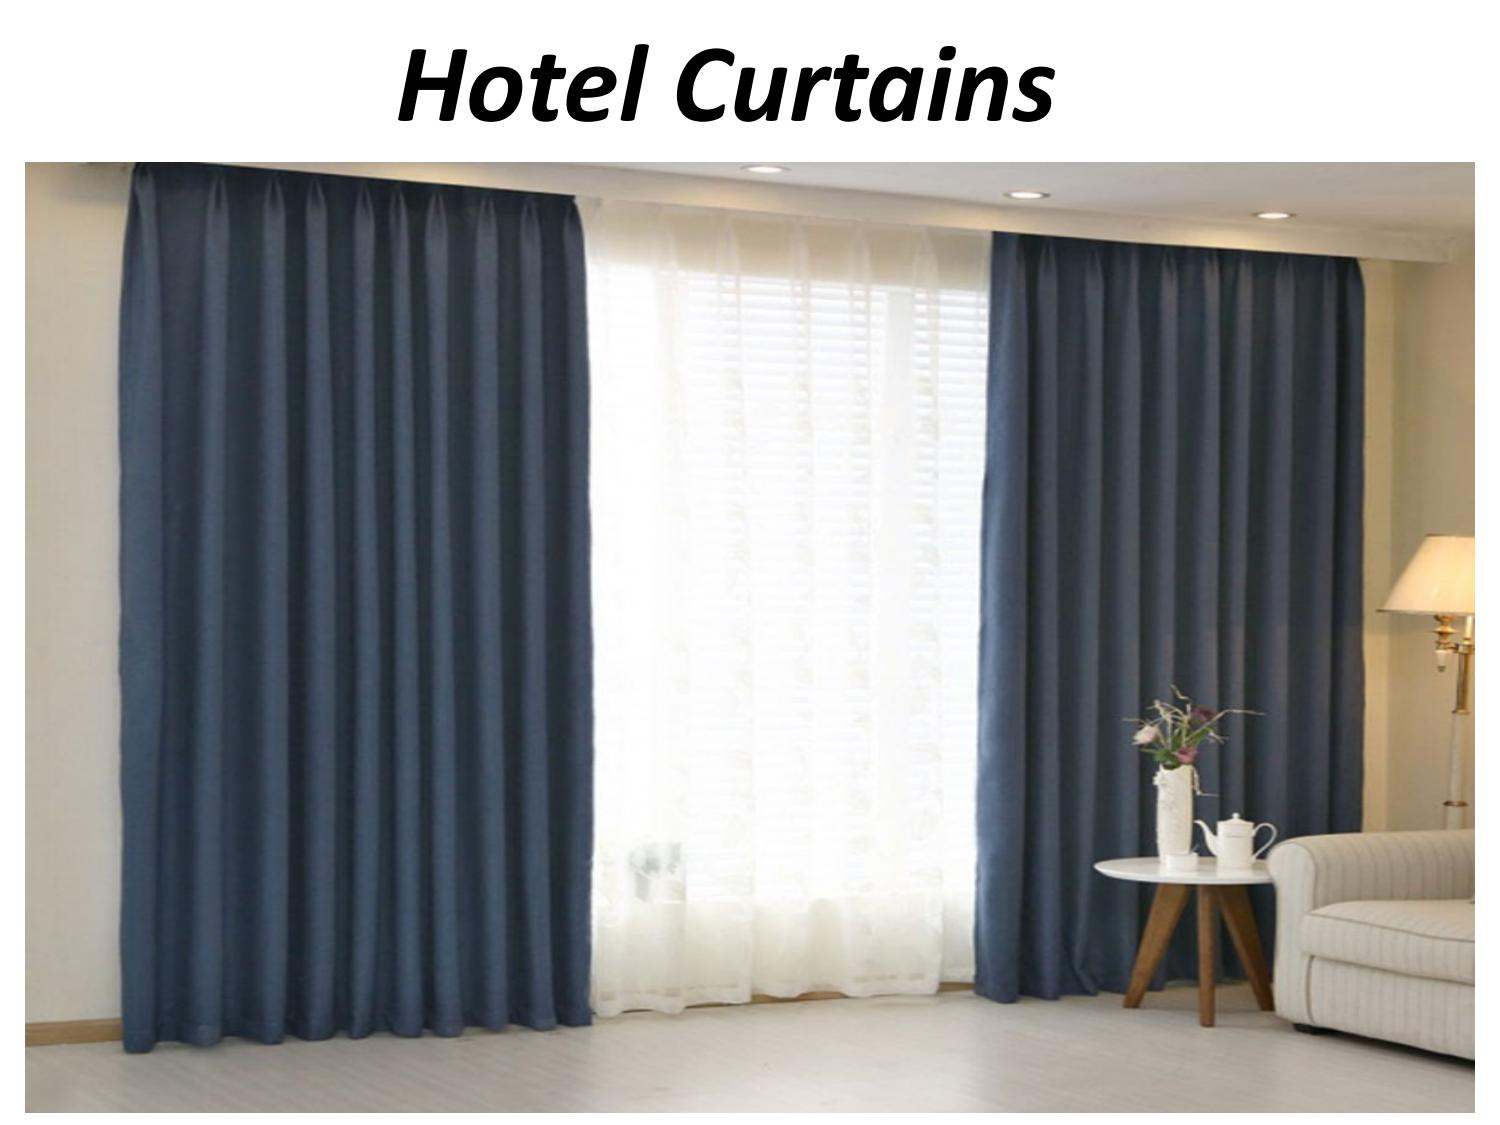 Hotel Curtains In Dubai By Mickey Micheal Issuu